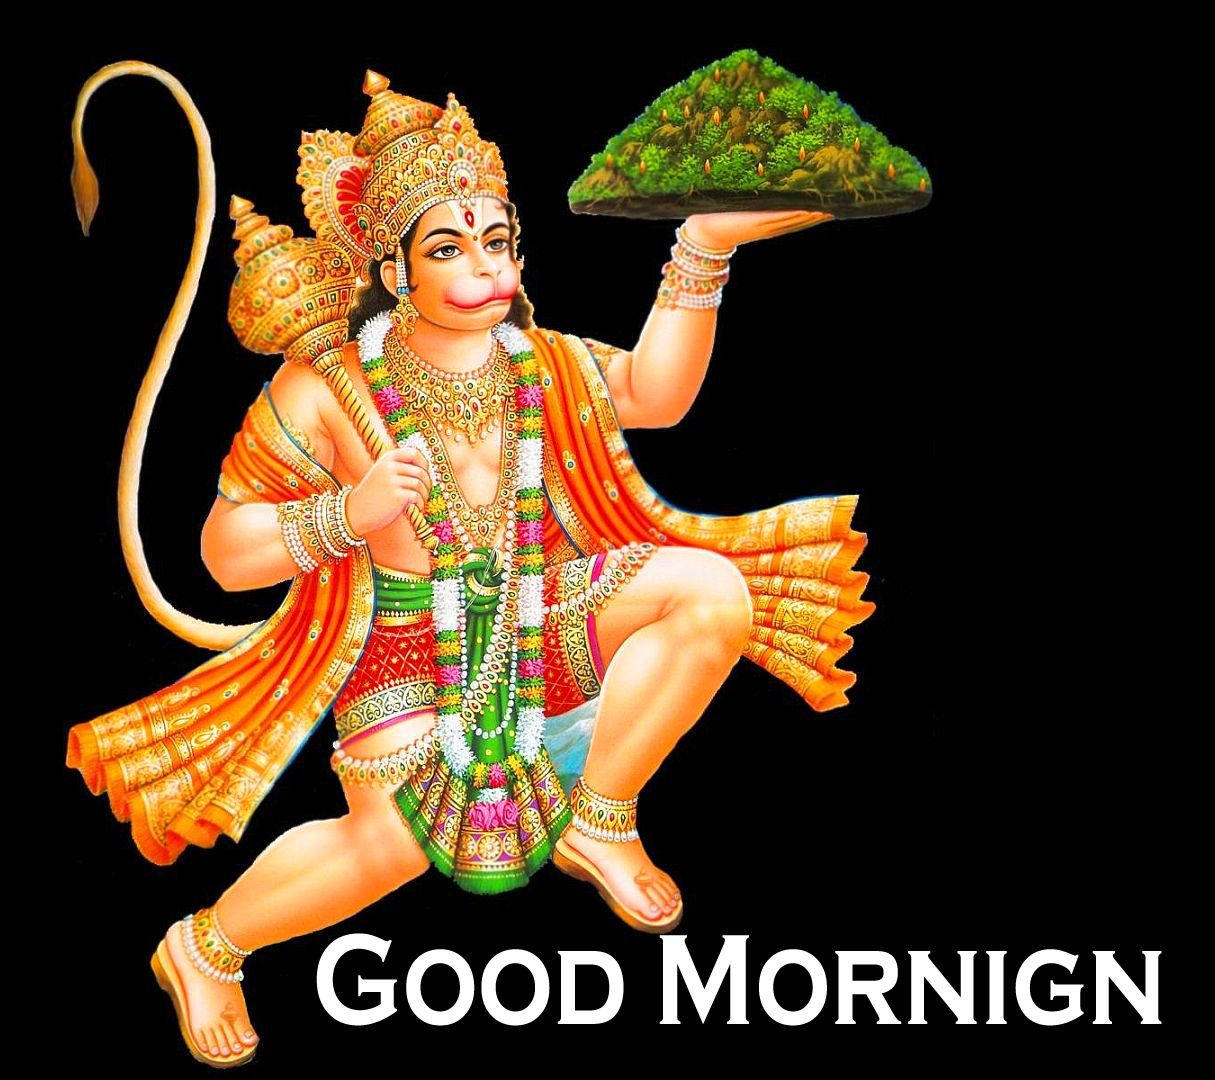 God Good Morning Images 6